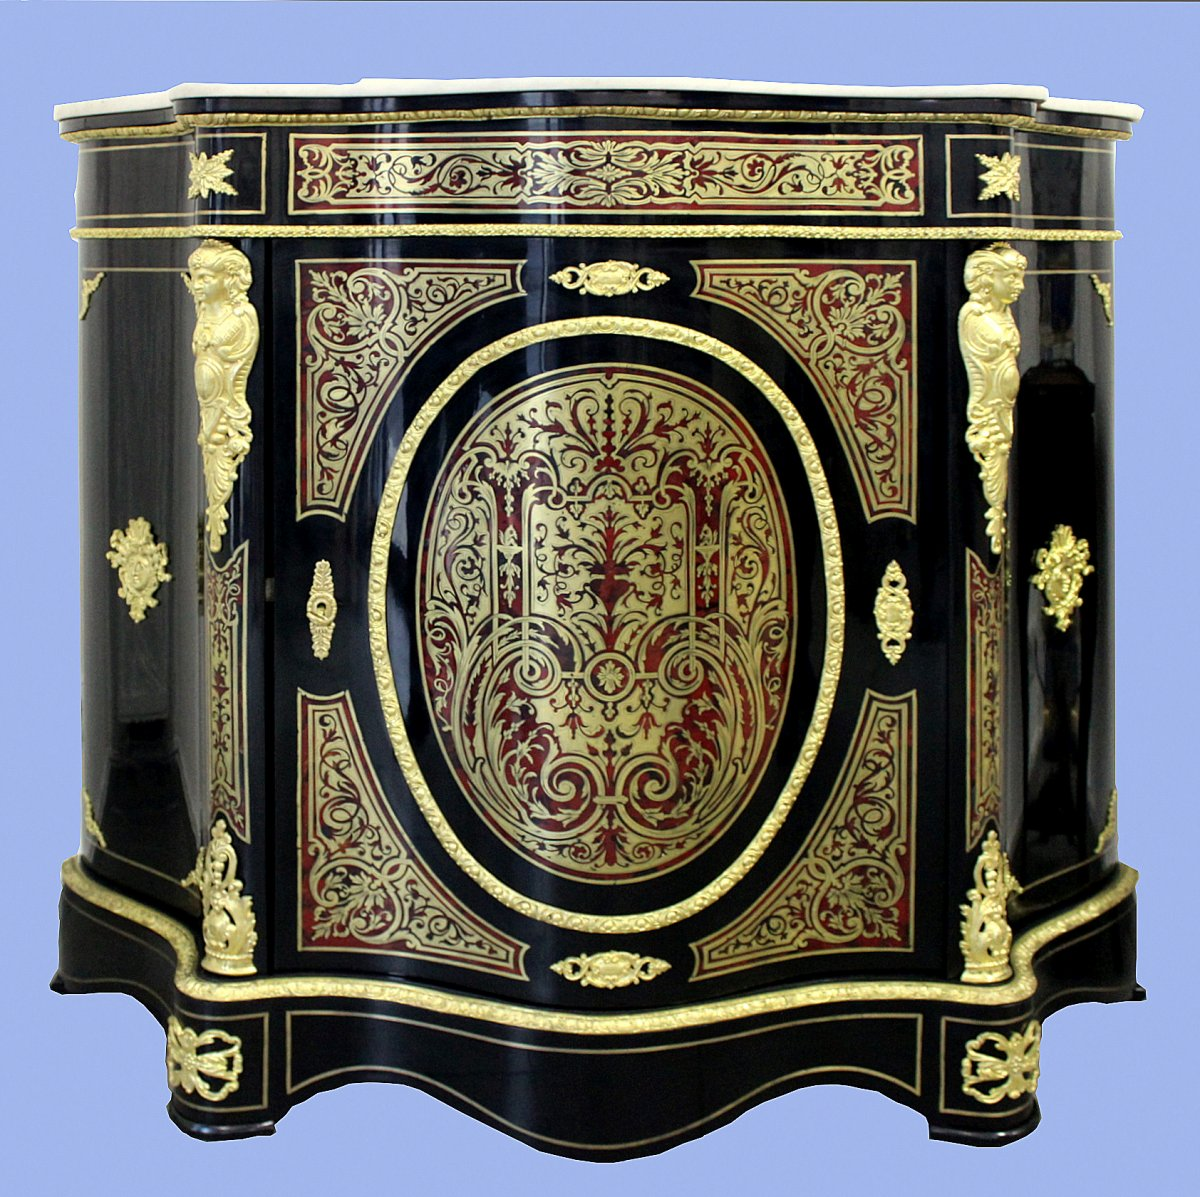 Commode In The Boulle Avec Plaque De Marbre Type Napoleon III France